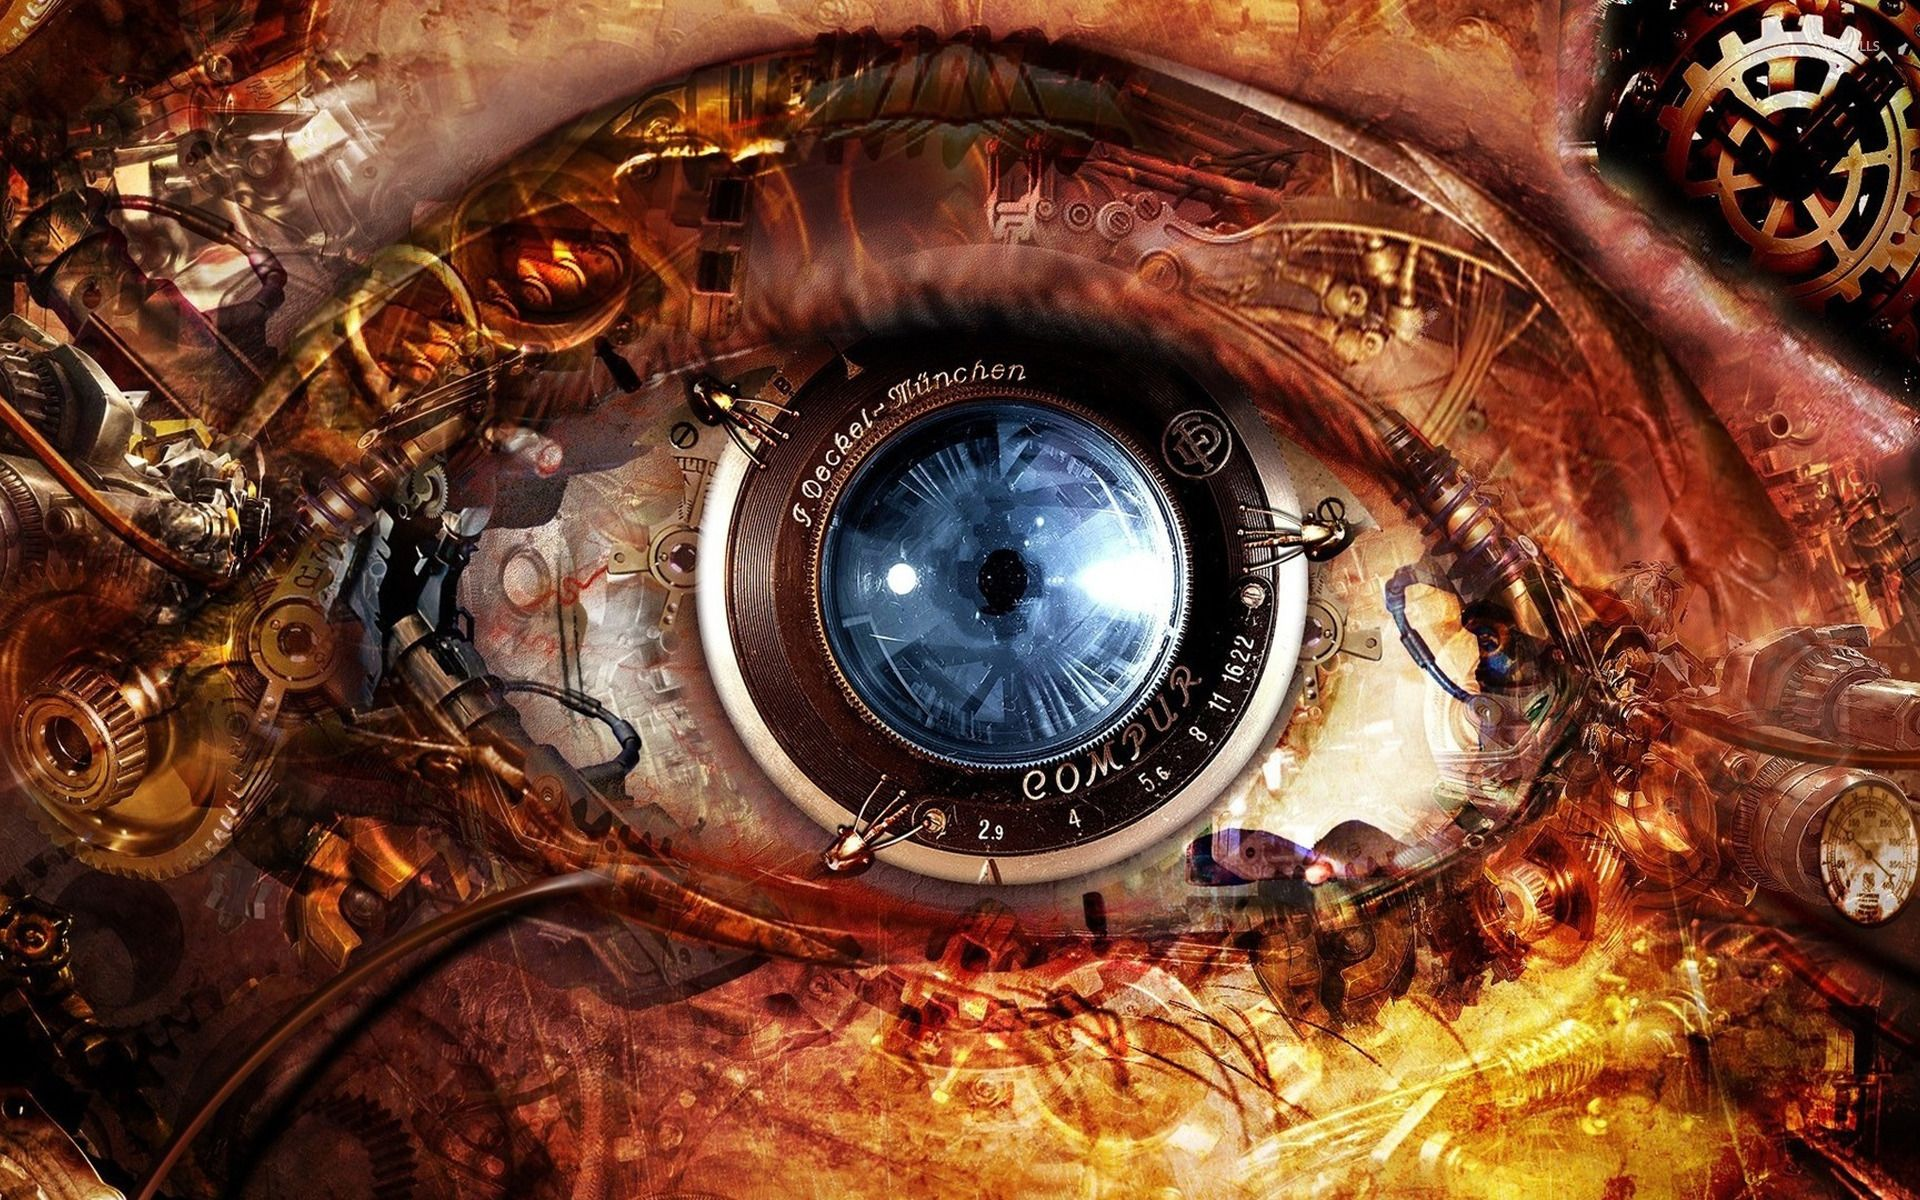 1920x1200 Steampunk Eye wallpaper - Digital Art wallpapers - #14139